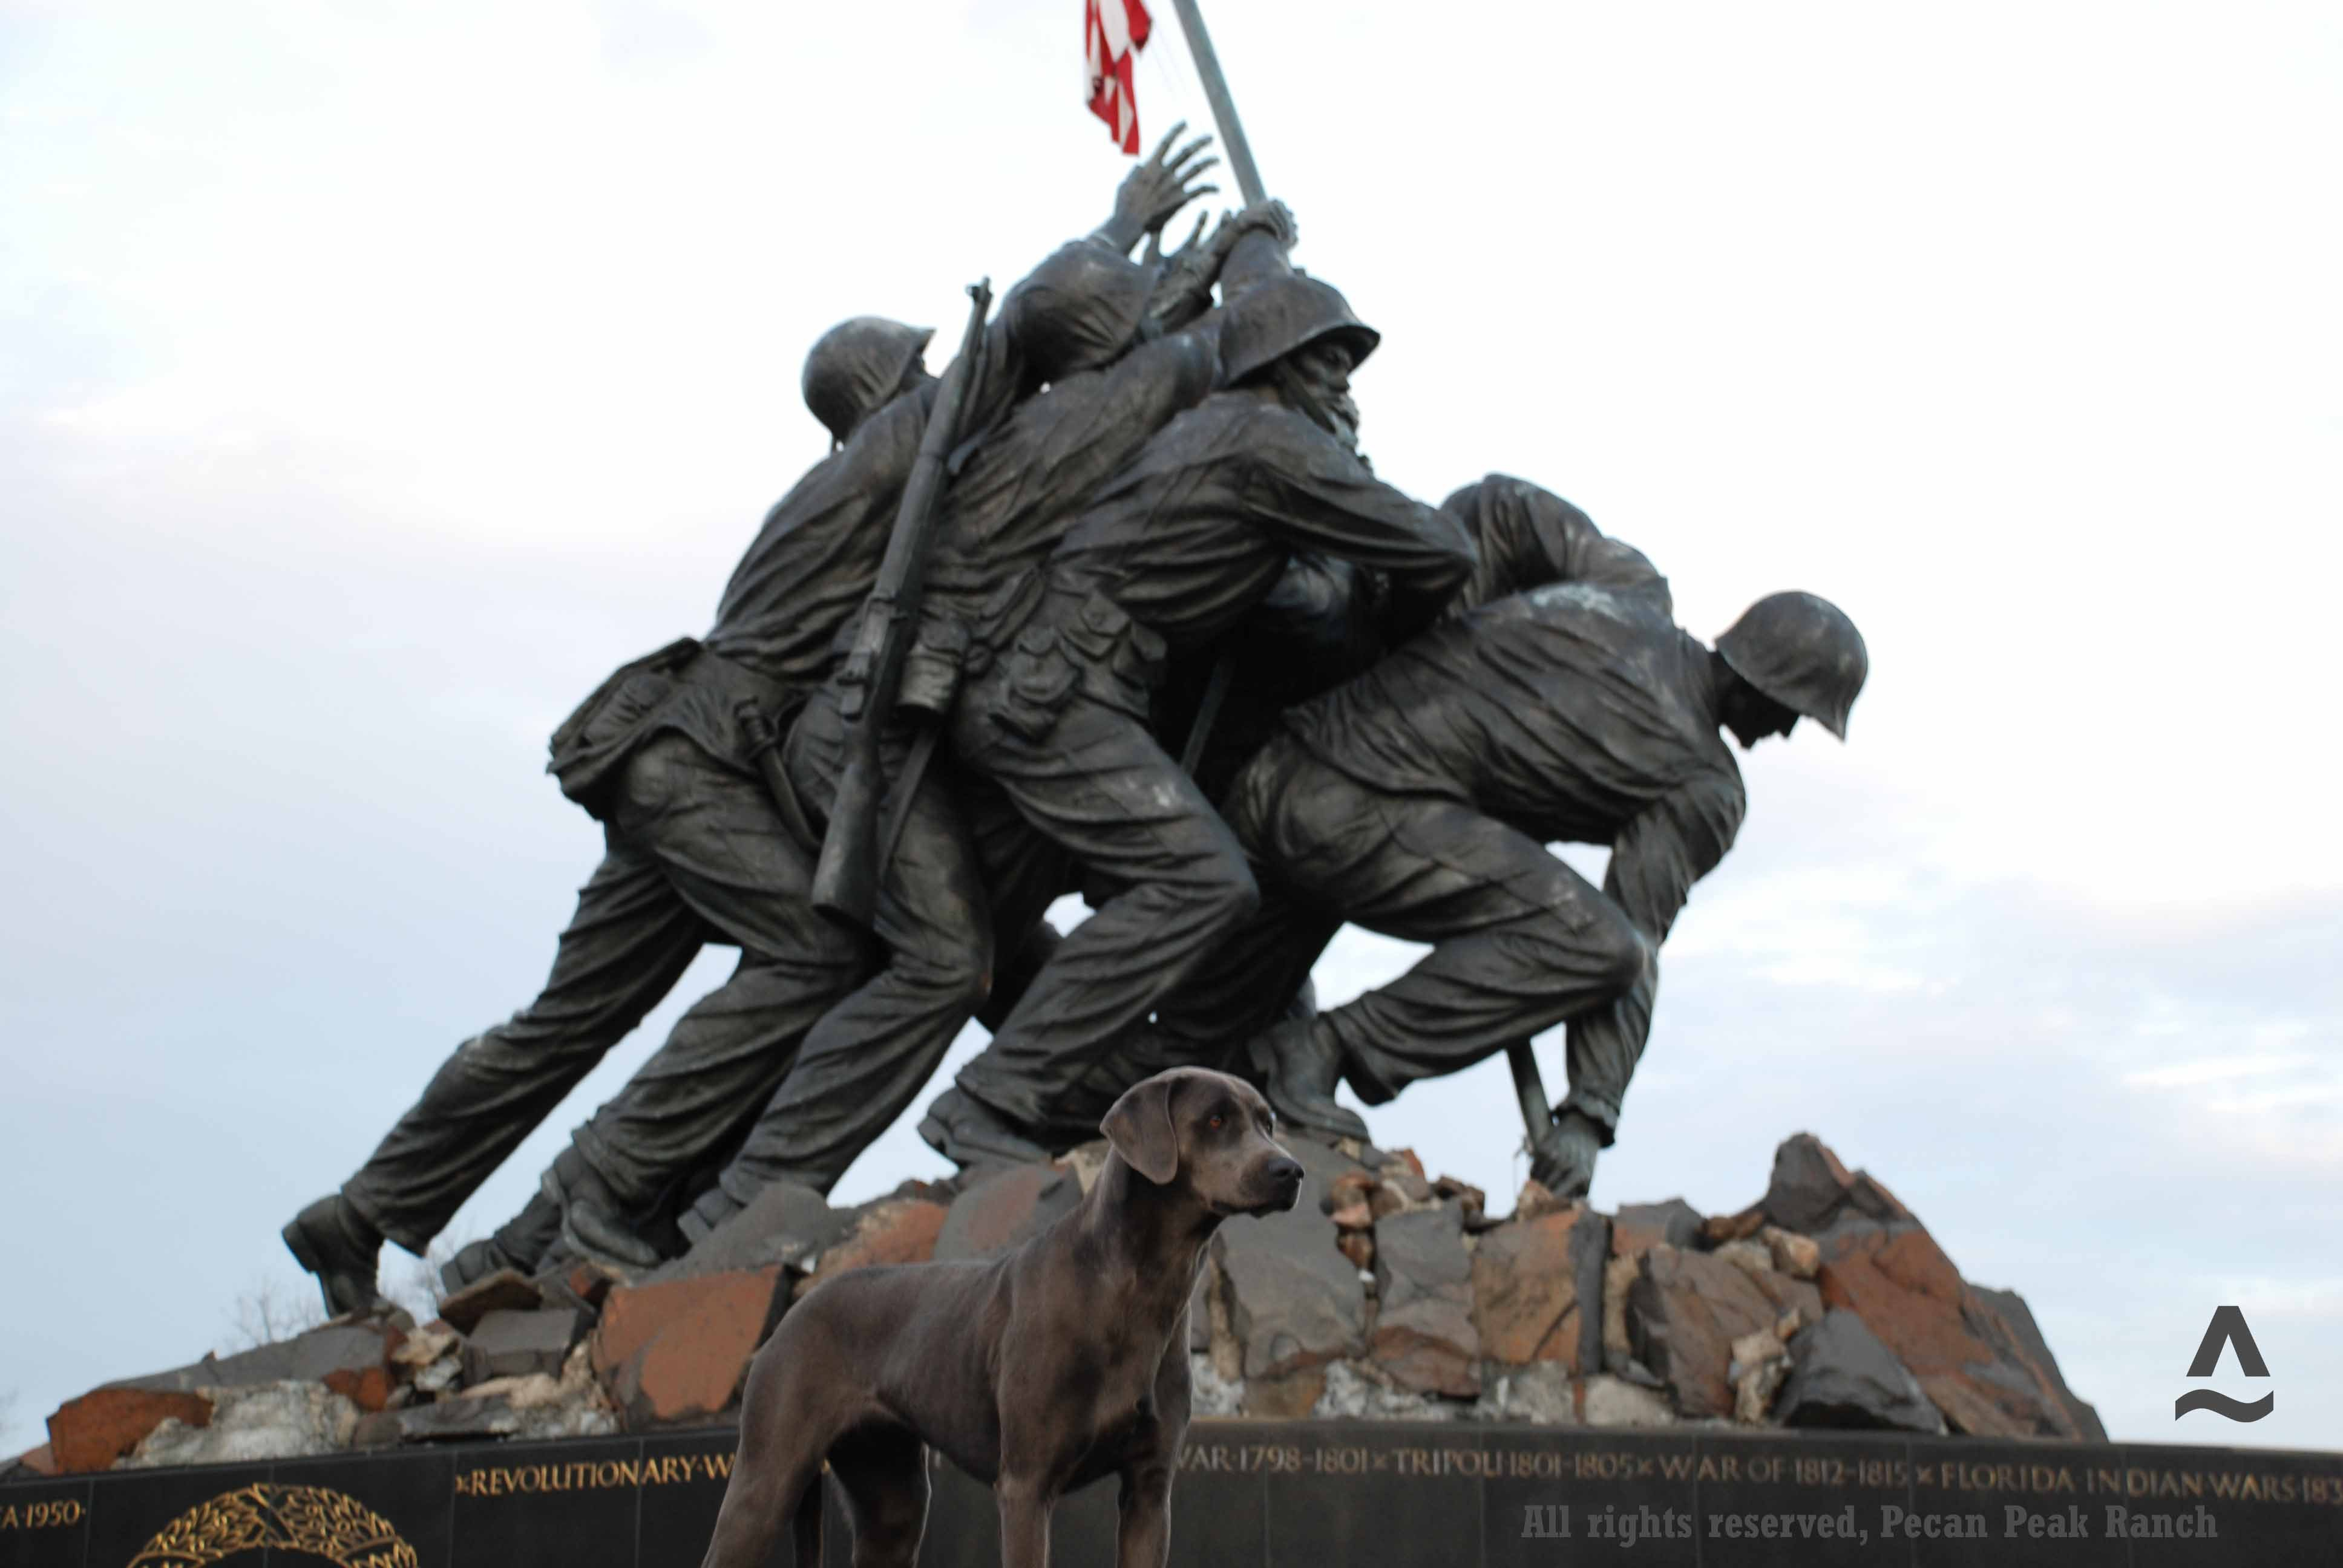 PPR's Jessie at the Statue of Iwo Jima in Washington DC